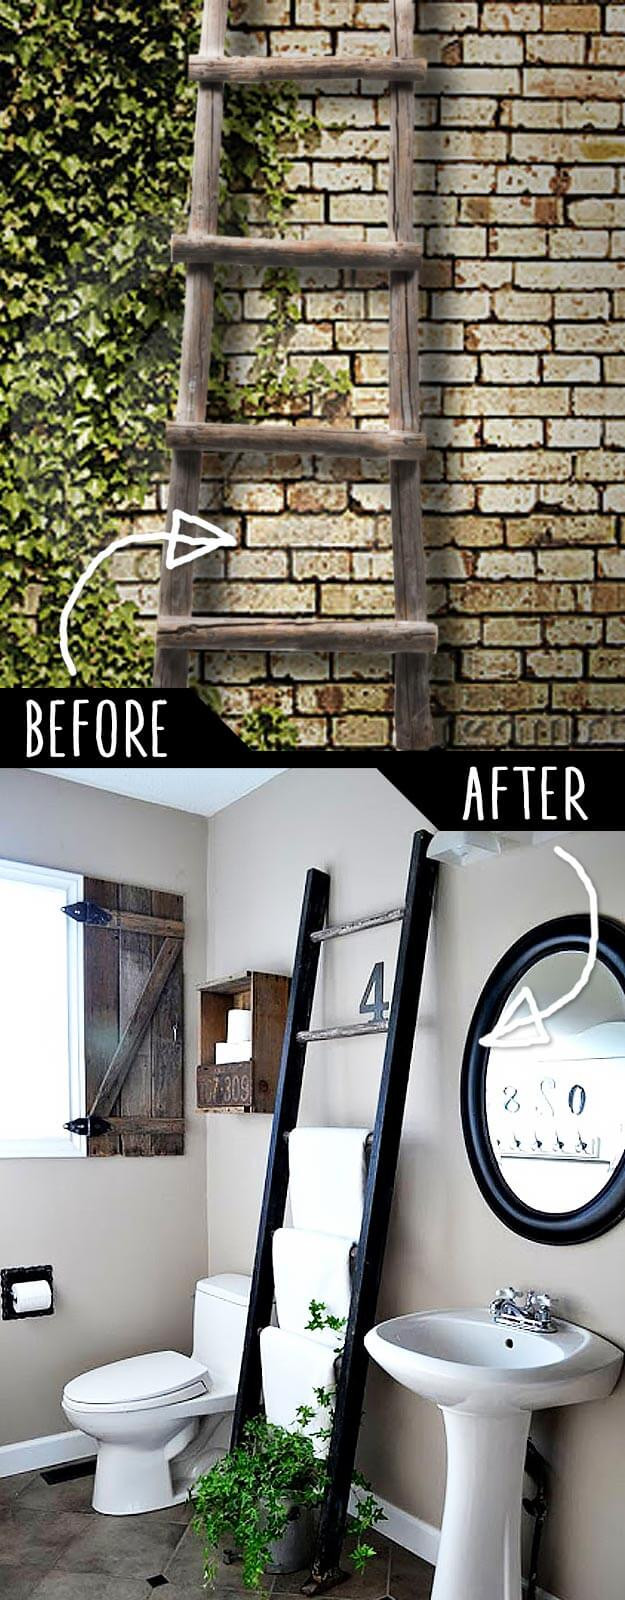 DIY Ladder Rack  50 DIY Furniture Projects with Step by Step Plans DIY Crafts